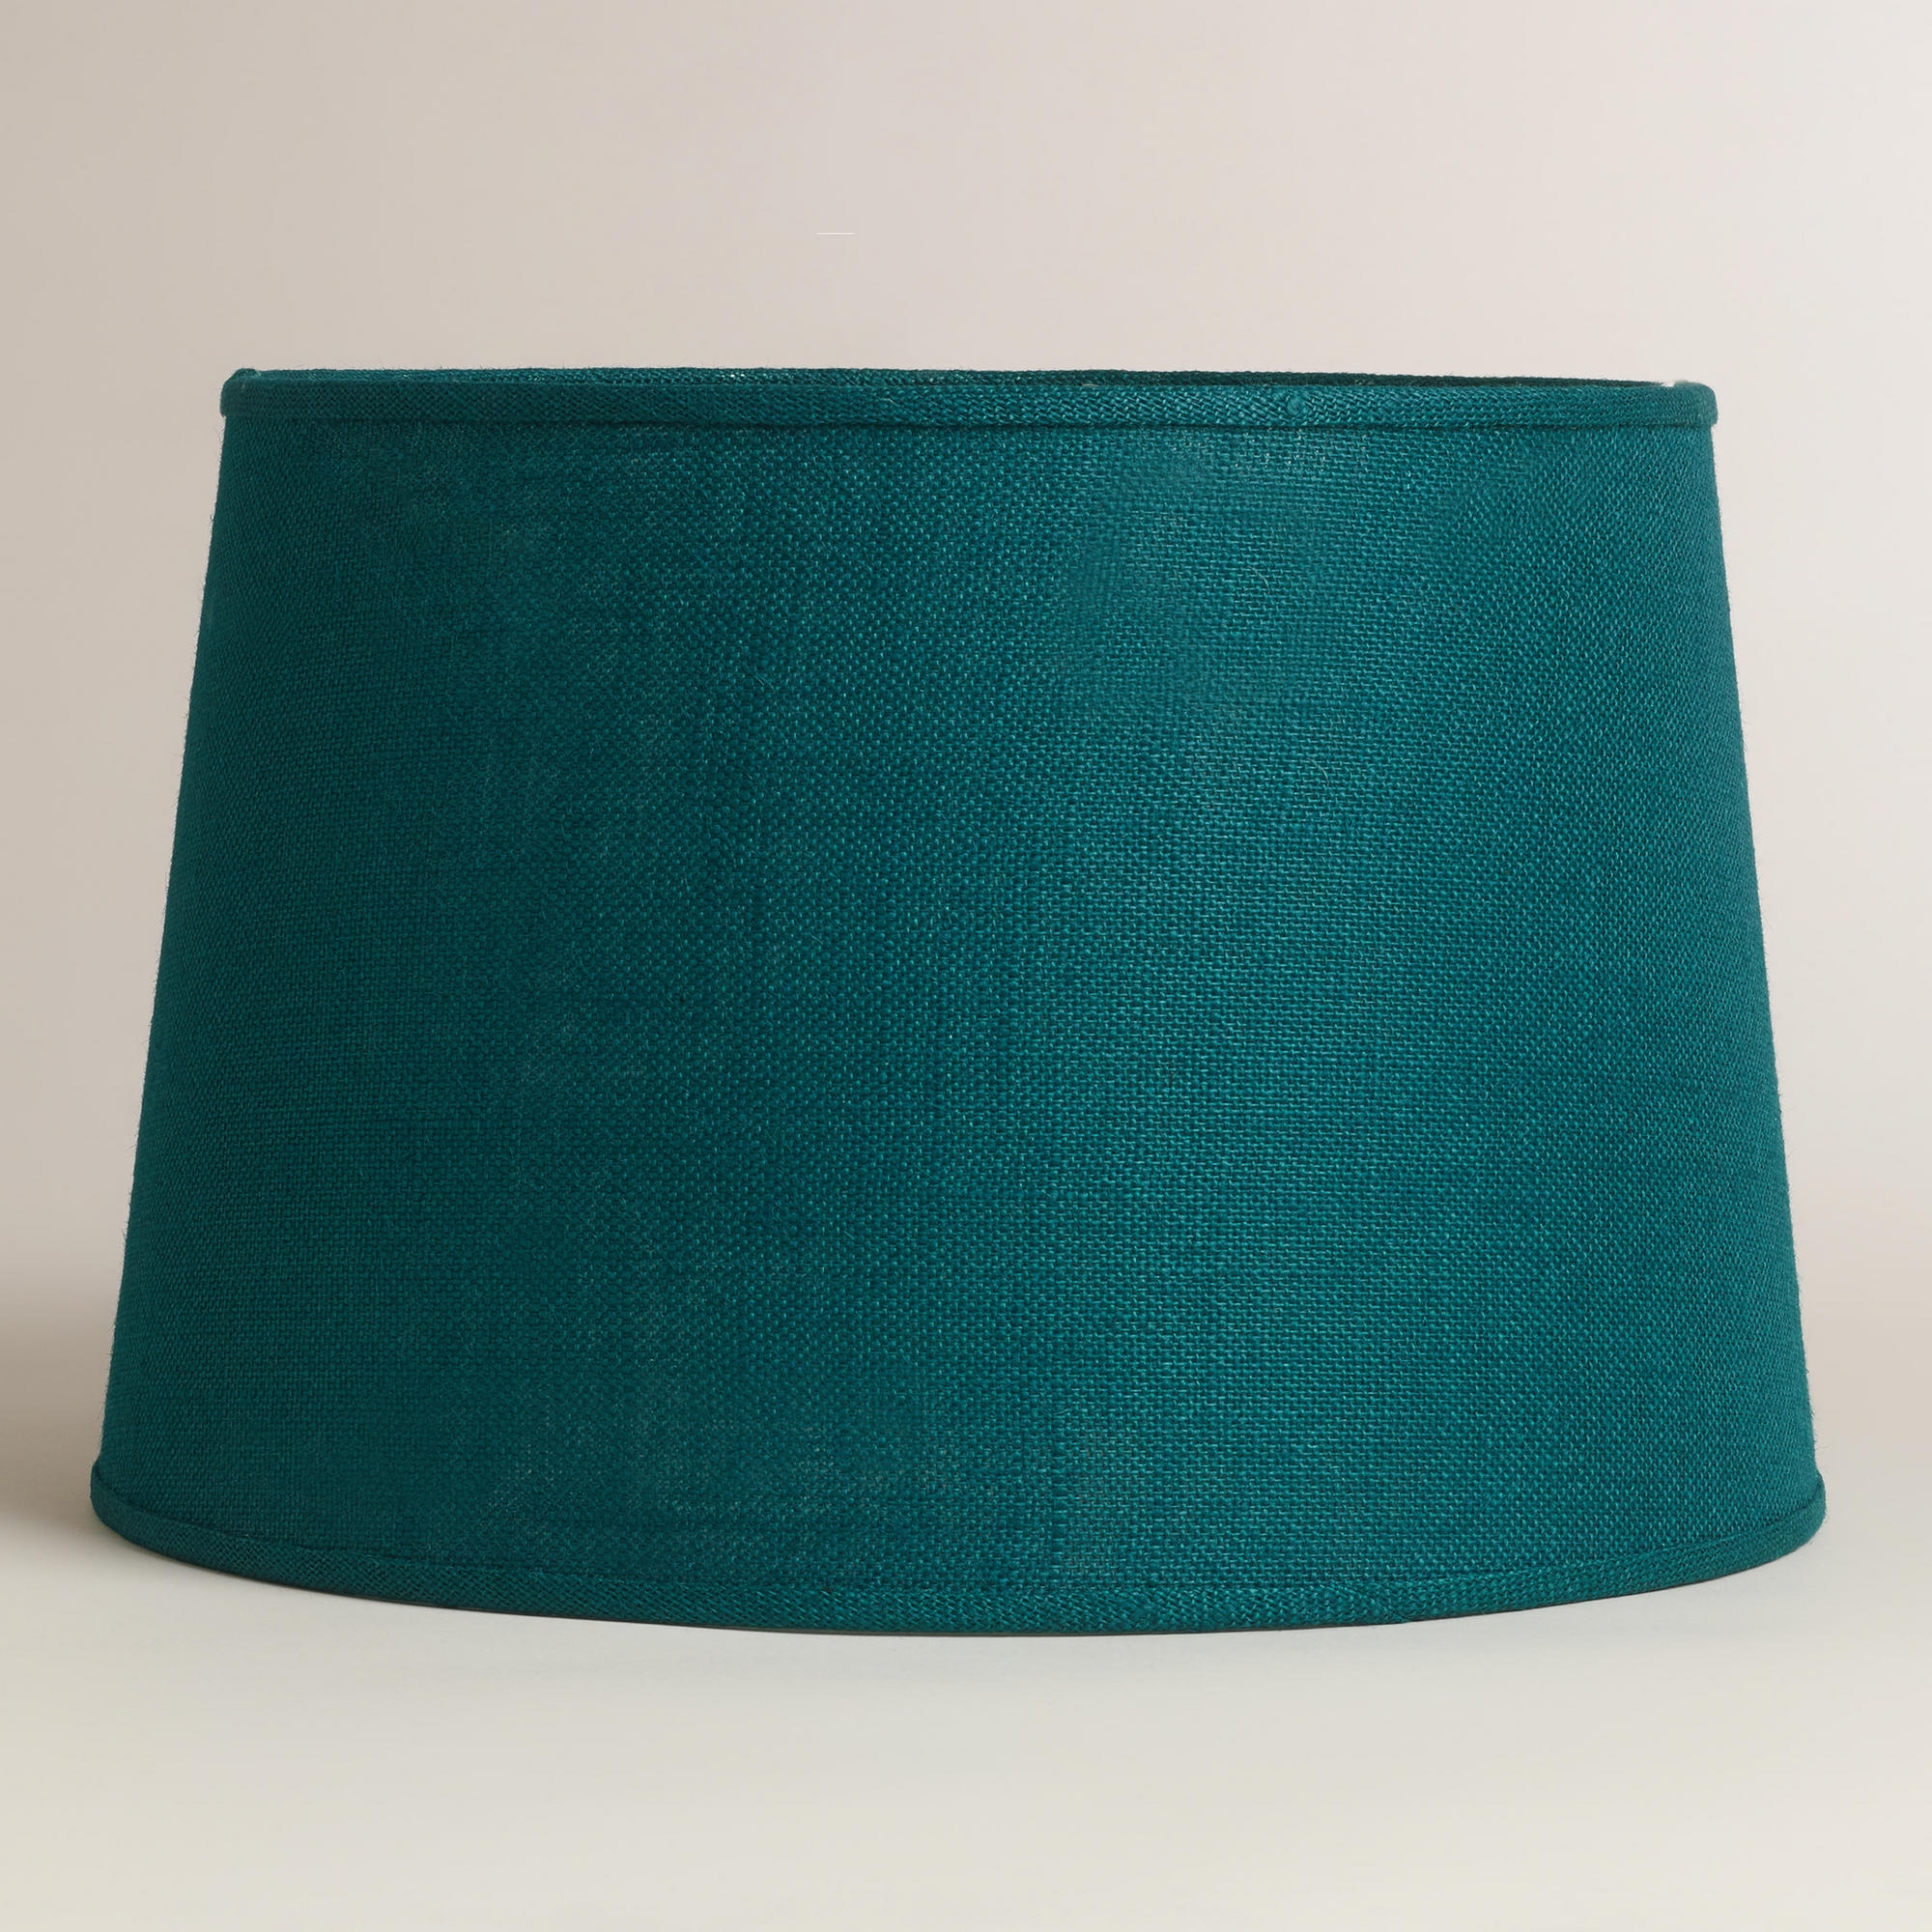 Decorative Burlap Lamp Shade